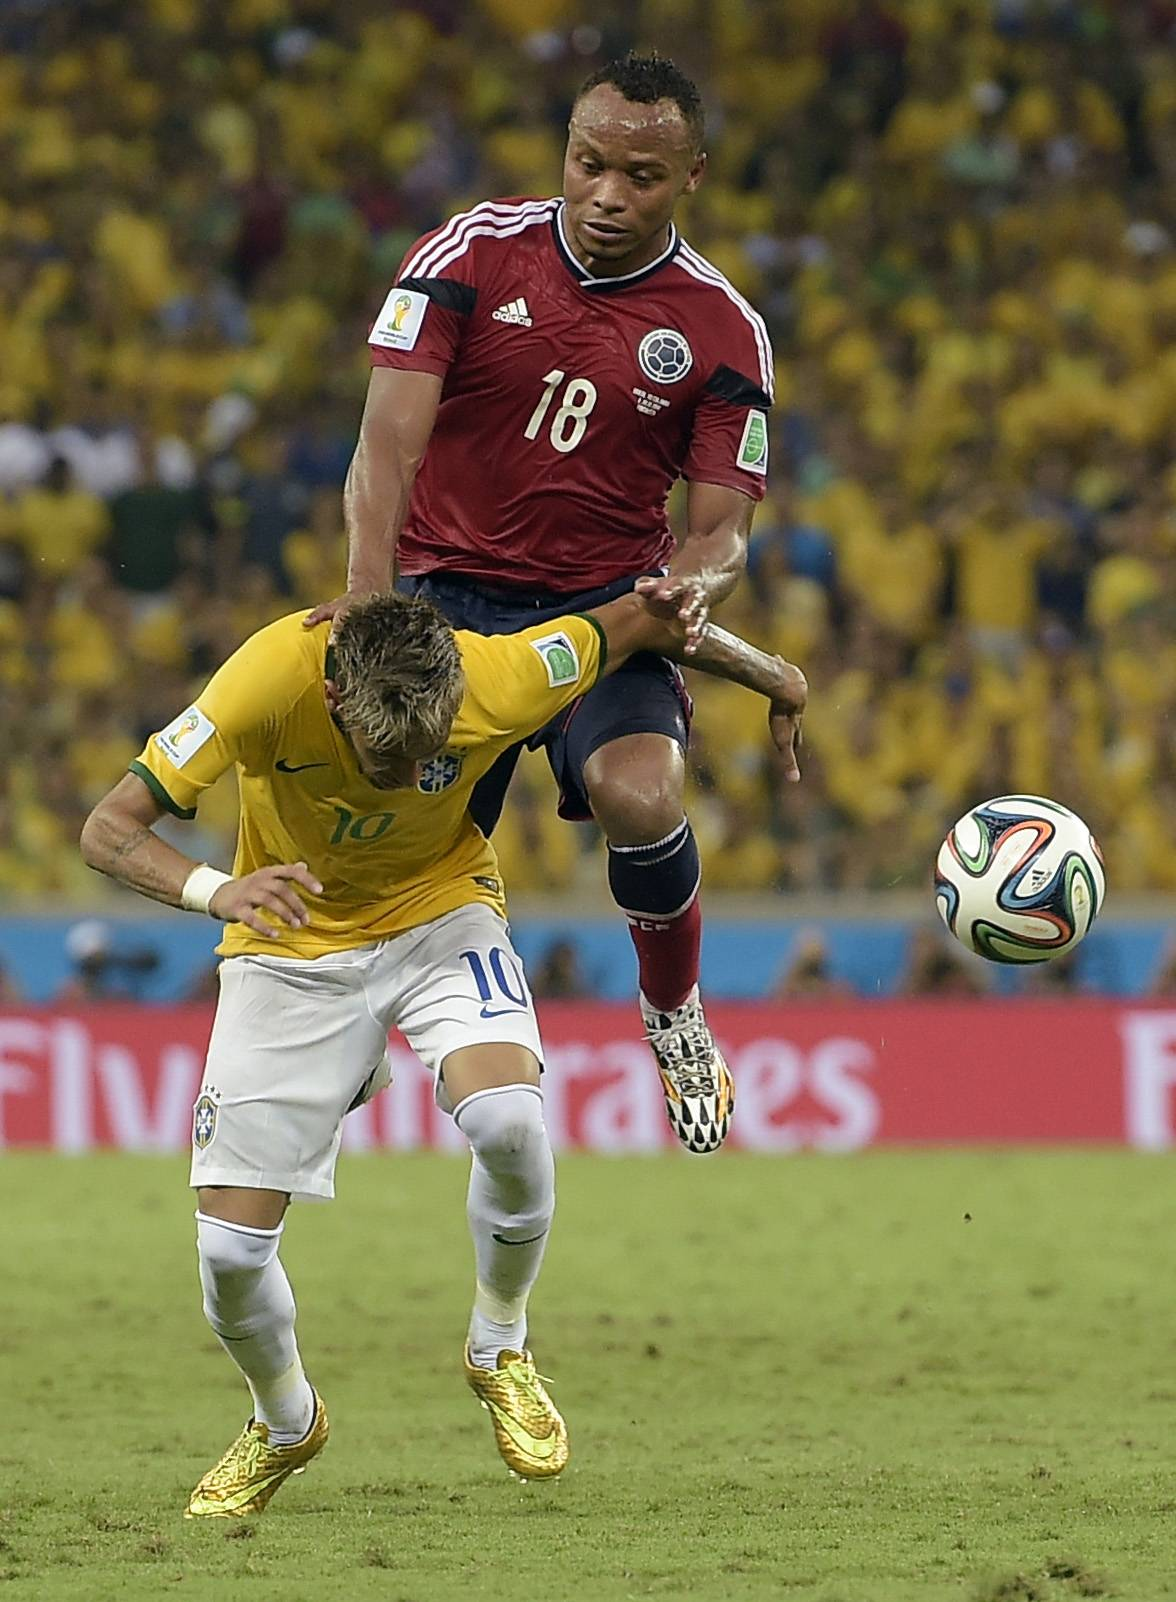 Brazil's Neymar is fouled by Colombia's Juan Zuniga during the World Cup quarterfinal soccer match between Brazil and Colombia at the Arena Castelao in Fortaleza, Brazil, Friday, July 4, 2014. Brazil's team doctor says Neymar will miss the rest of the World Cup after breaking a vertebrae during the team's quarterfinal win over Colombia.